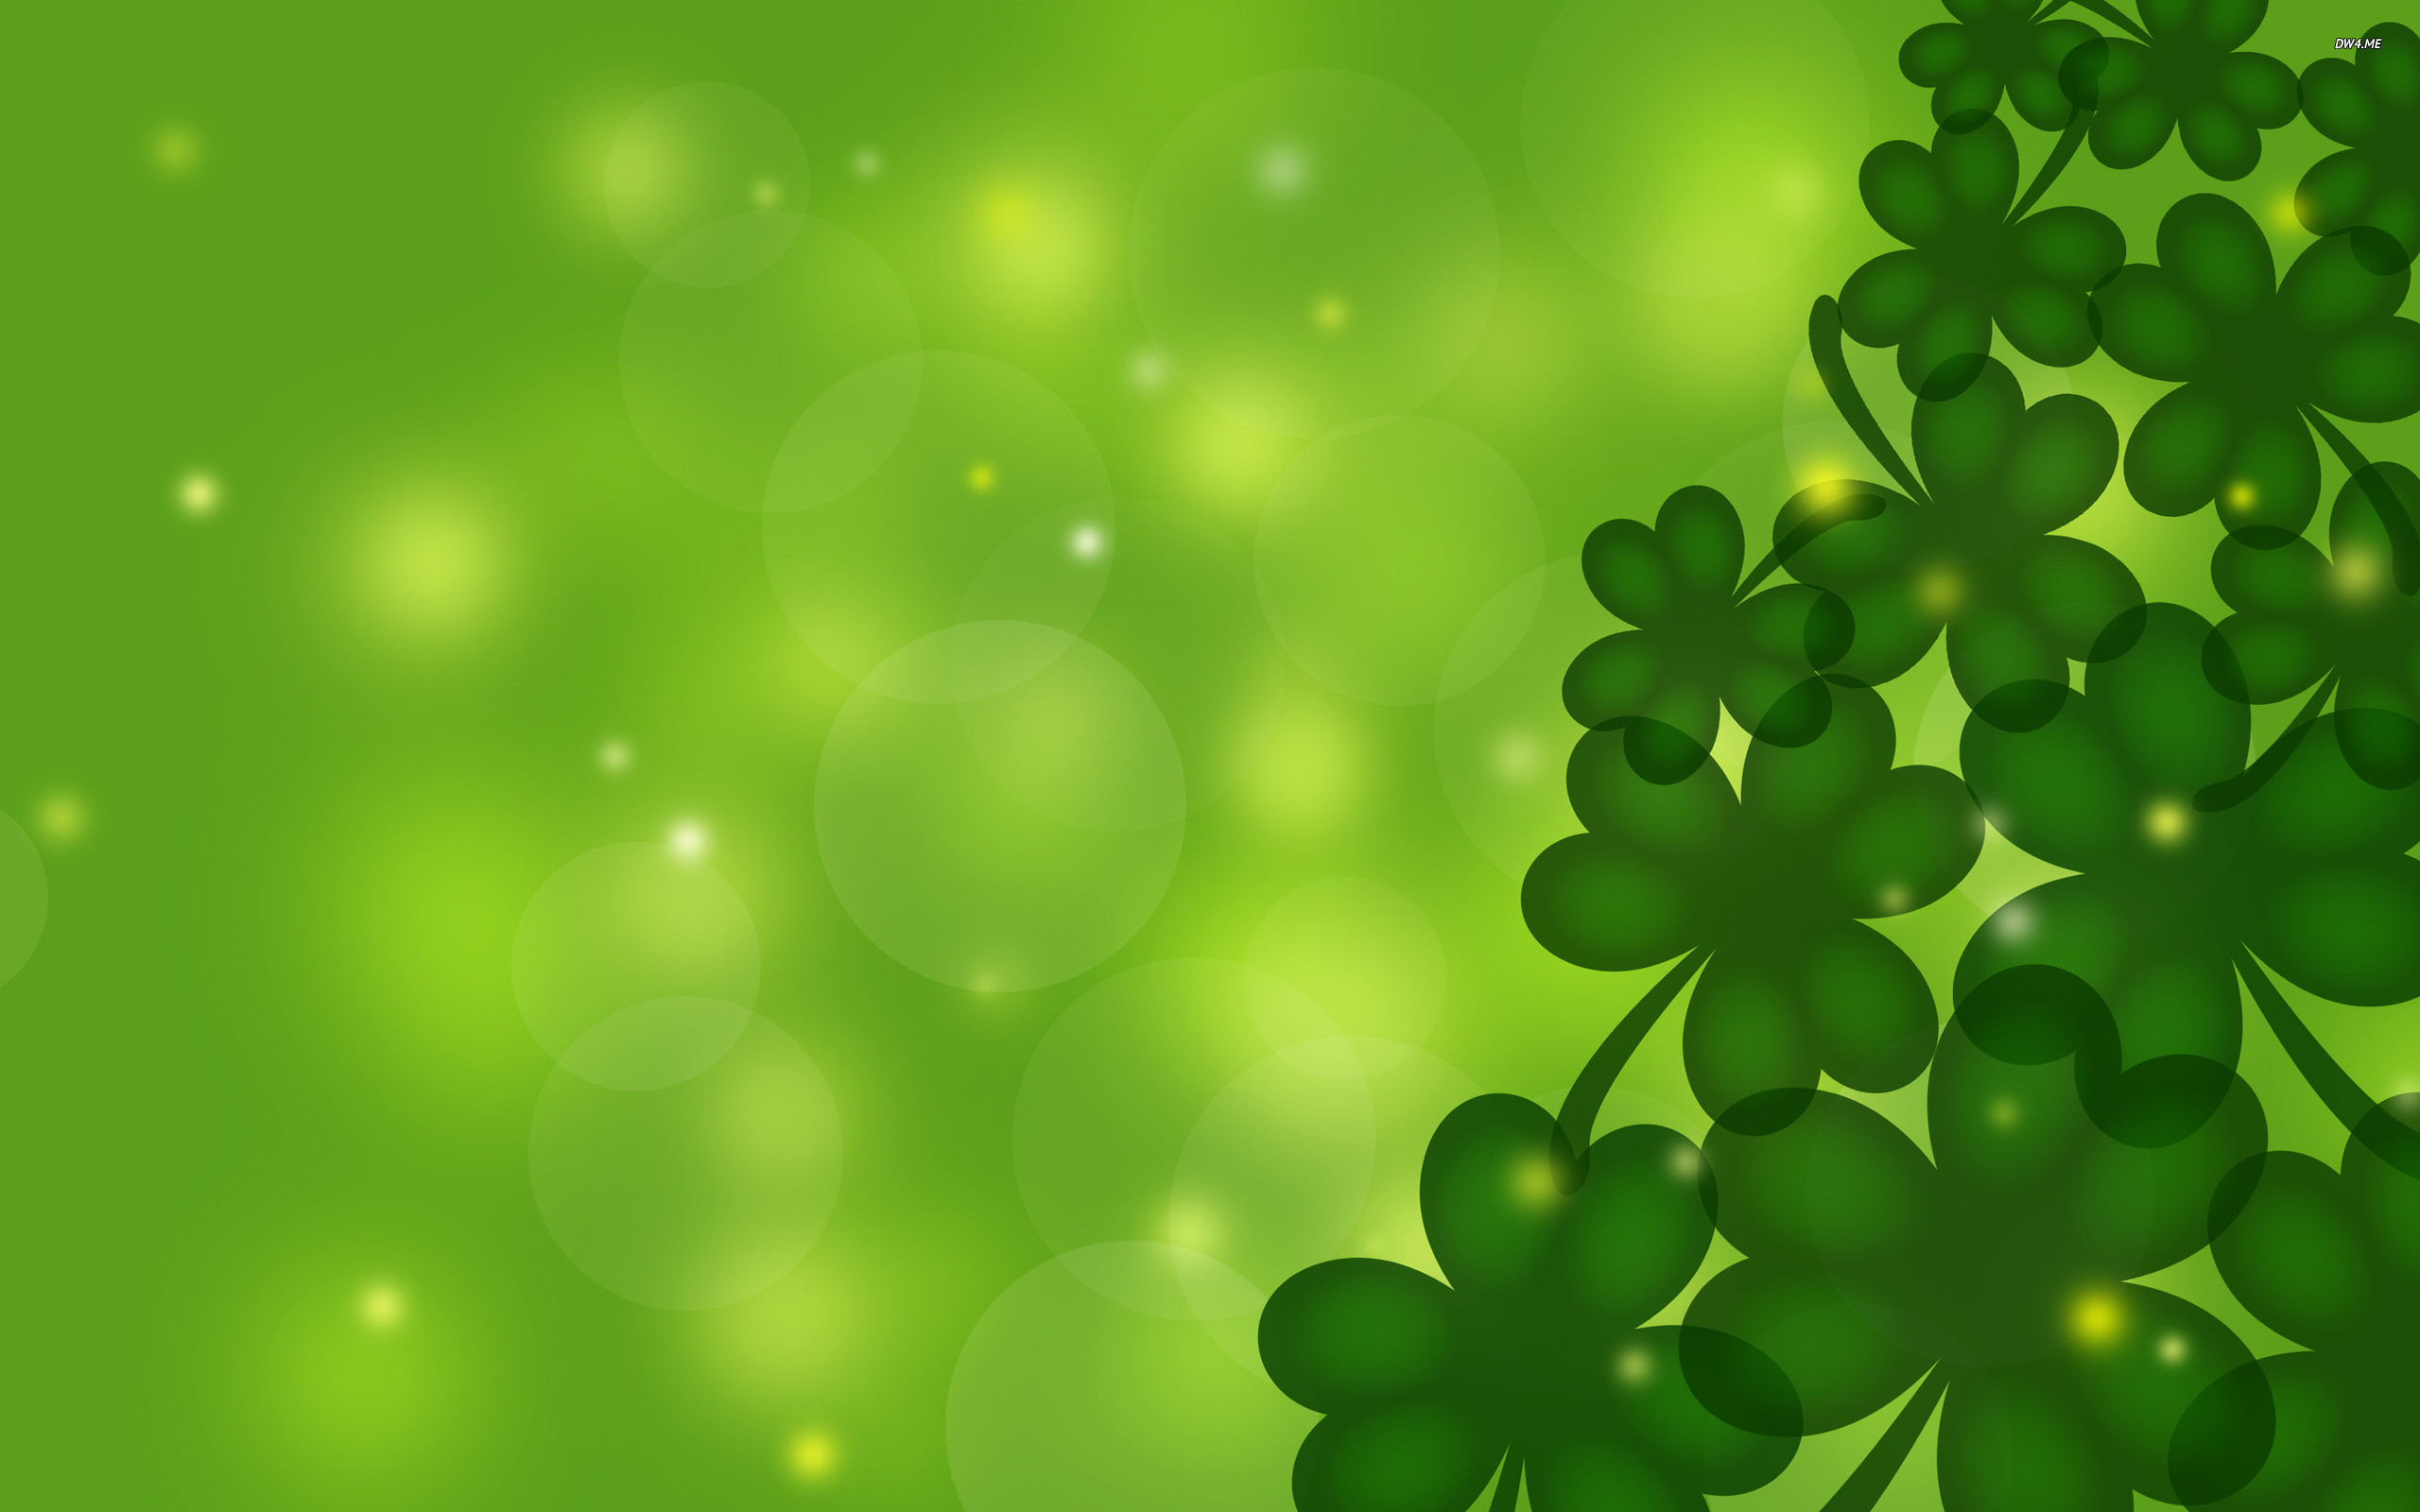 2560x1600 Wallpapers Shamrock - Wallpaper Cave Free Shamrock Wallpapers - Wallpaper  Cave ...